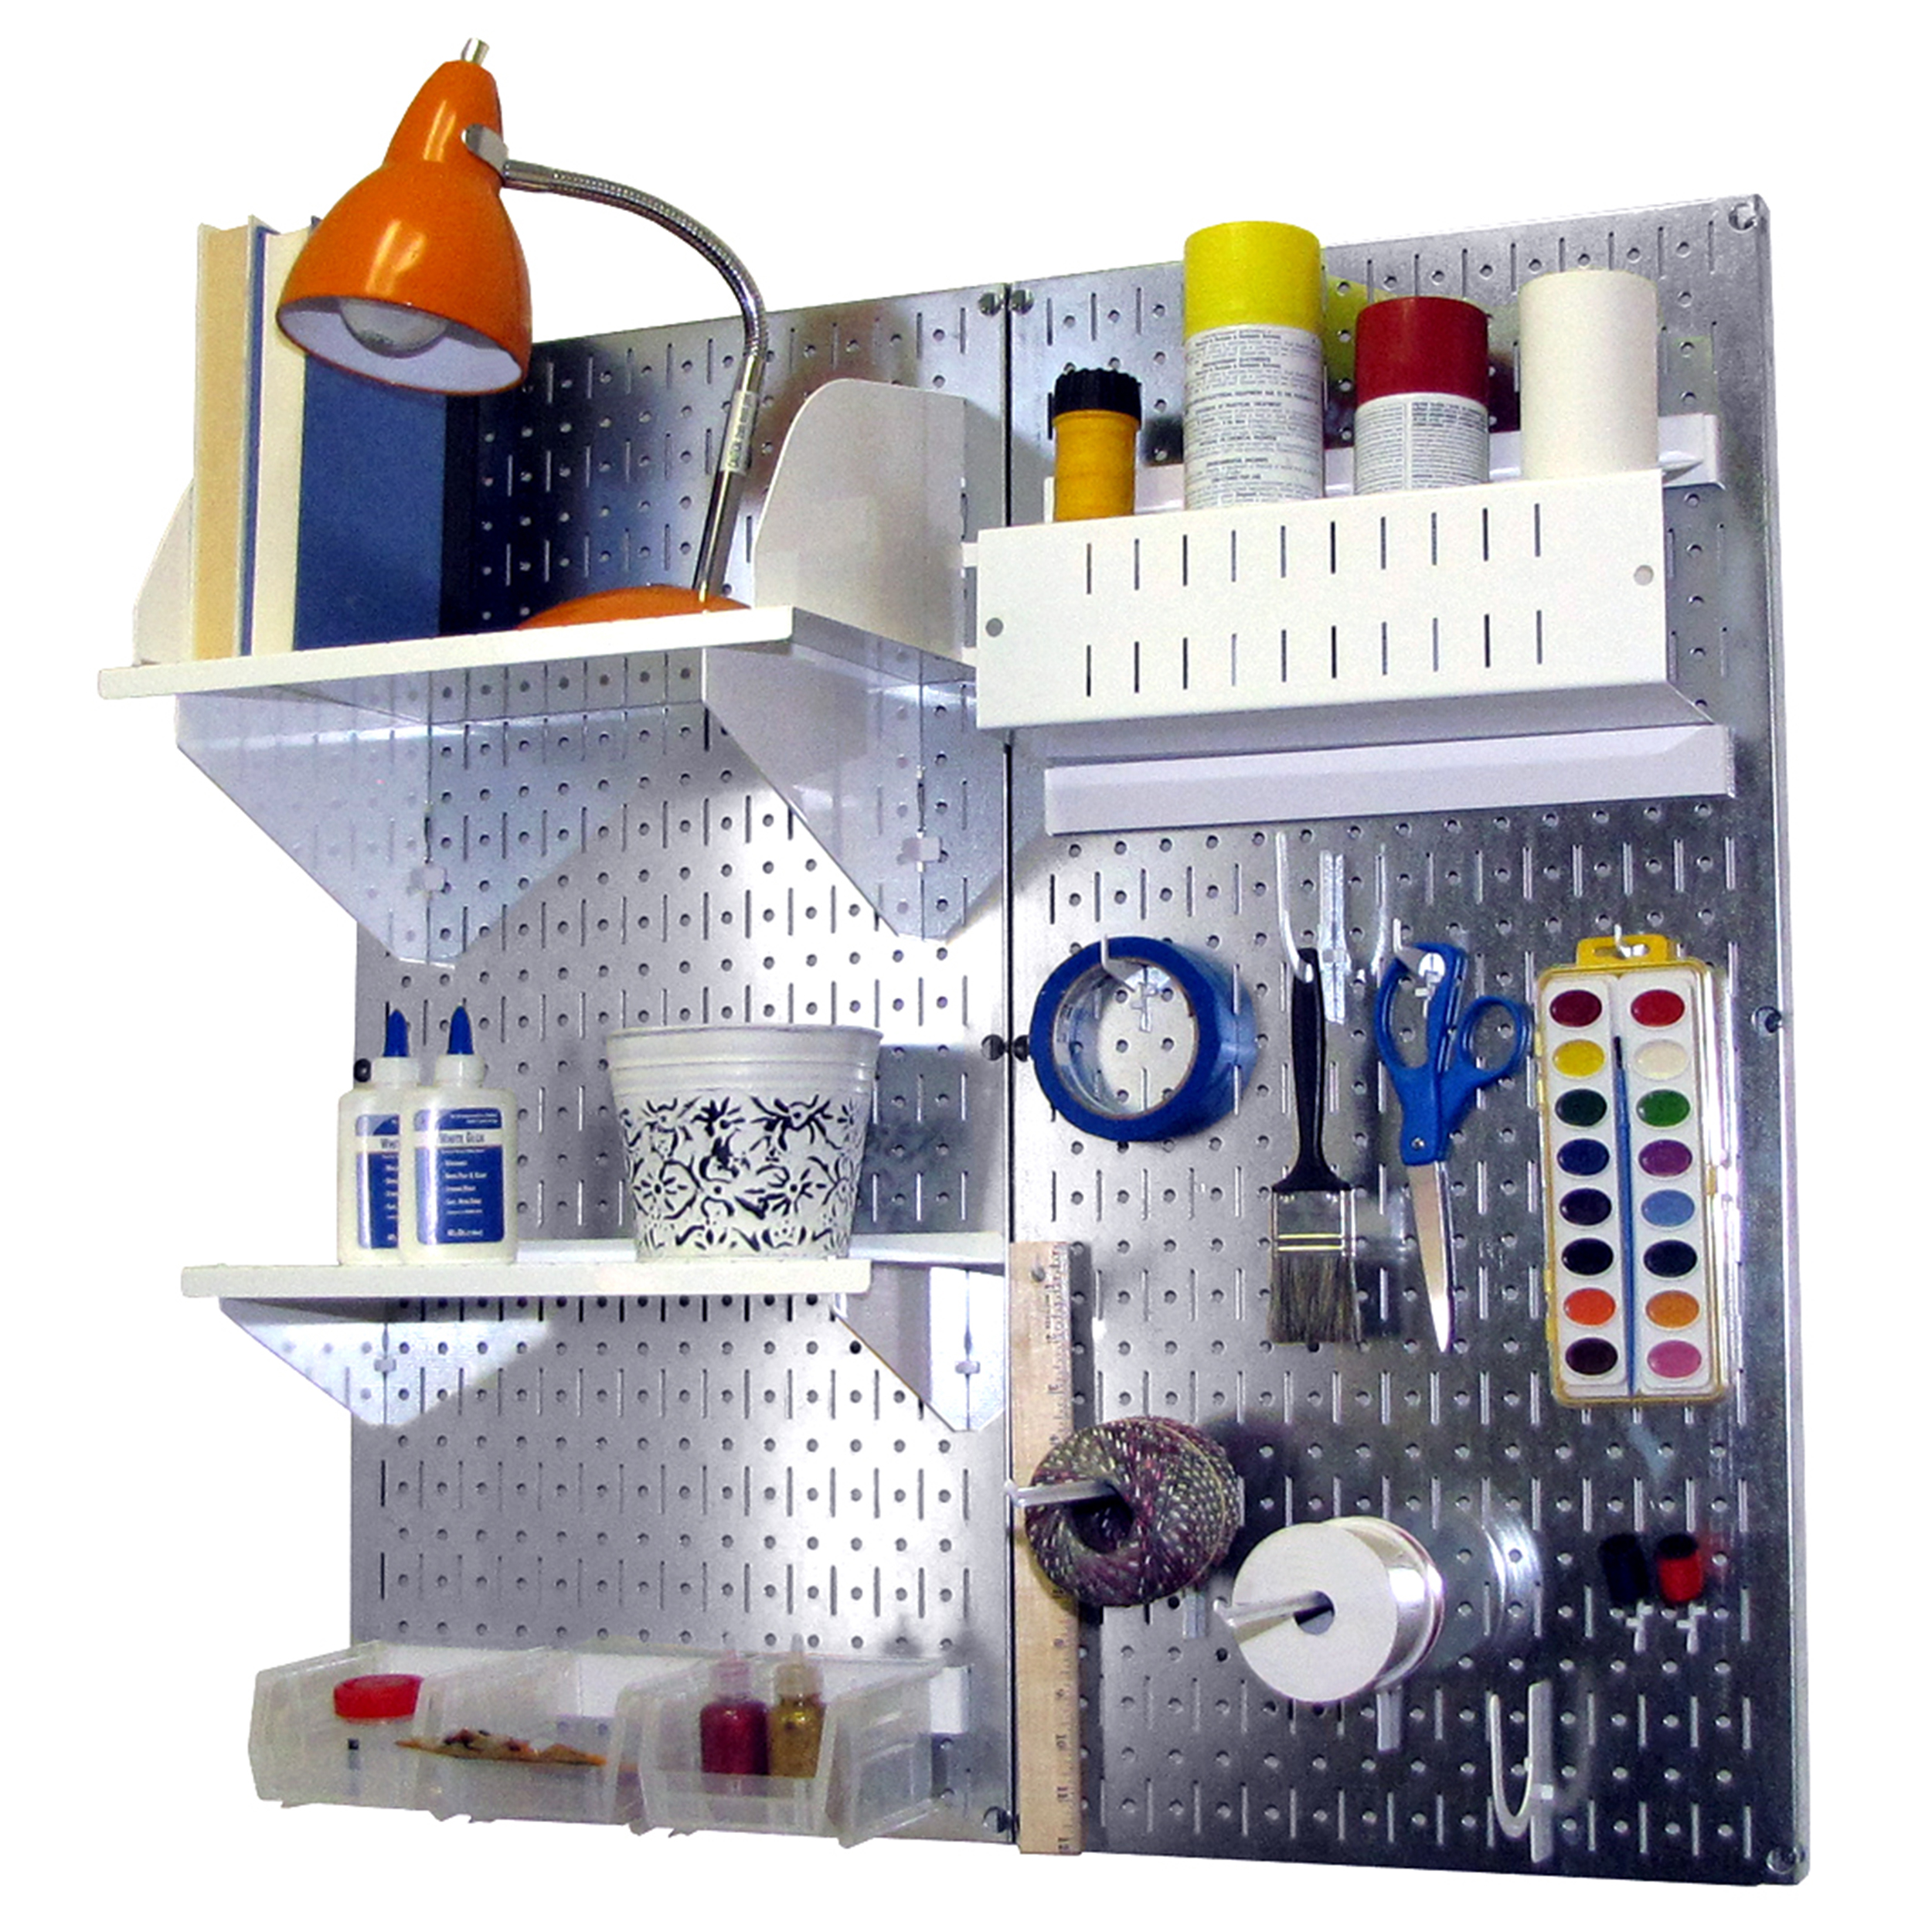 Pegboard Hobby Craft Pegboard Organizer Storage Kit with Metallic Pegboard and White Accessories